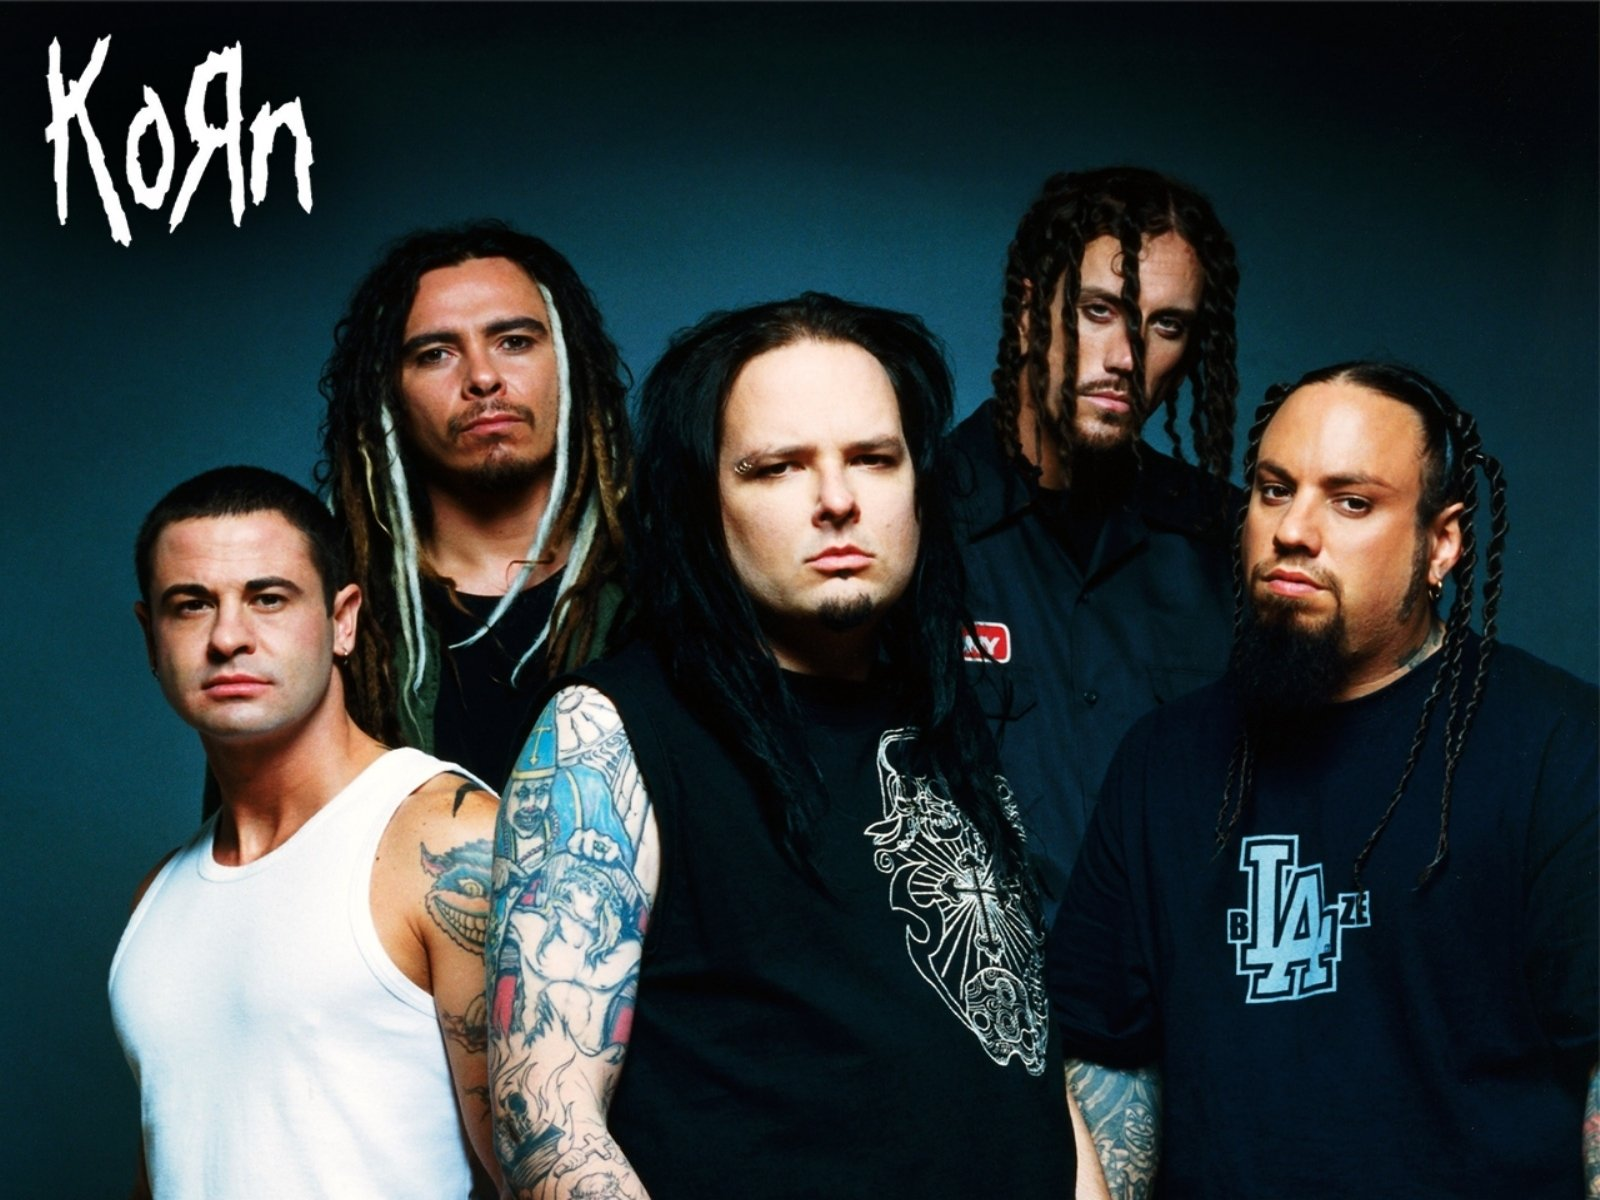 20 Korn Hd Wallpapers Background Images Wallpaper Abyss